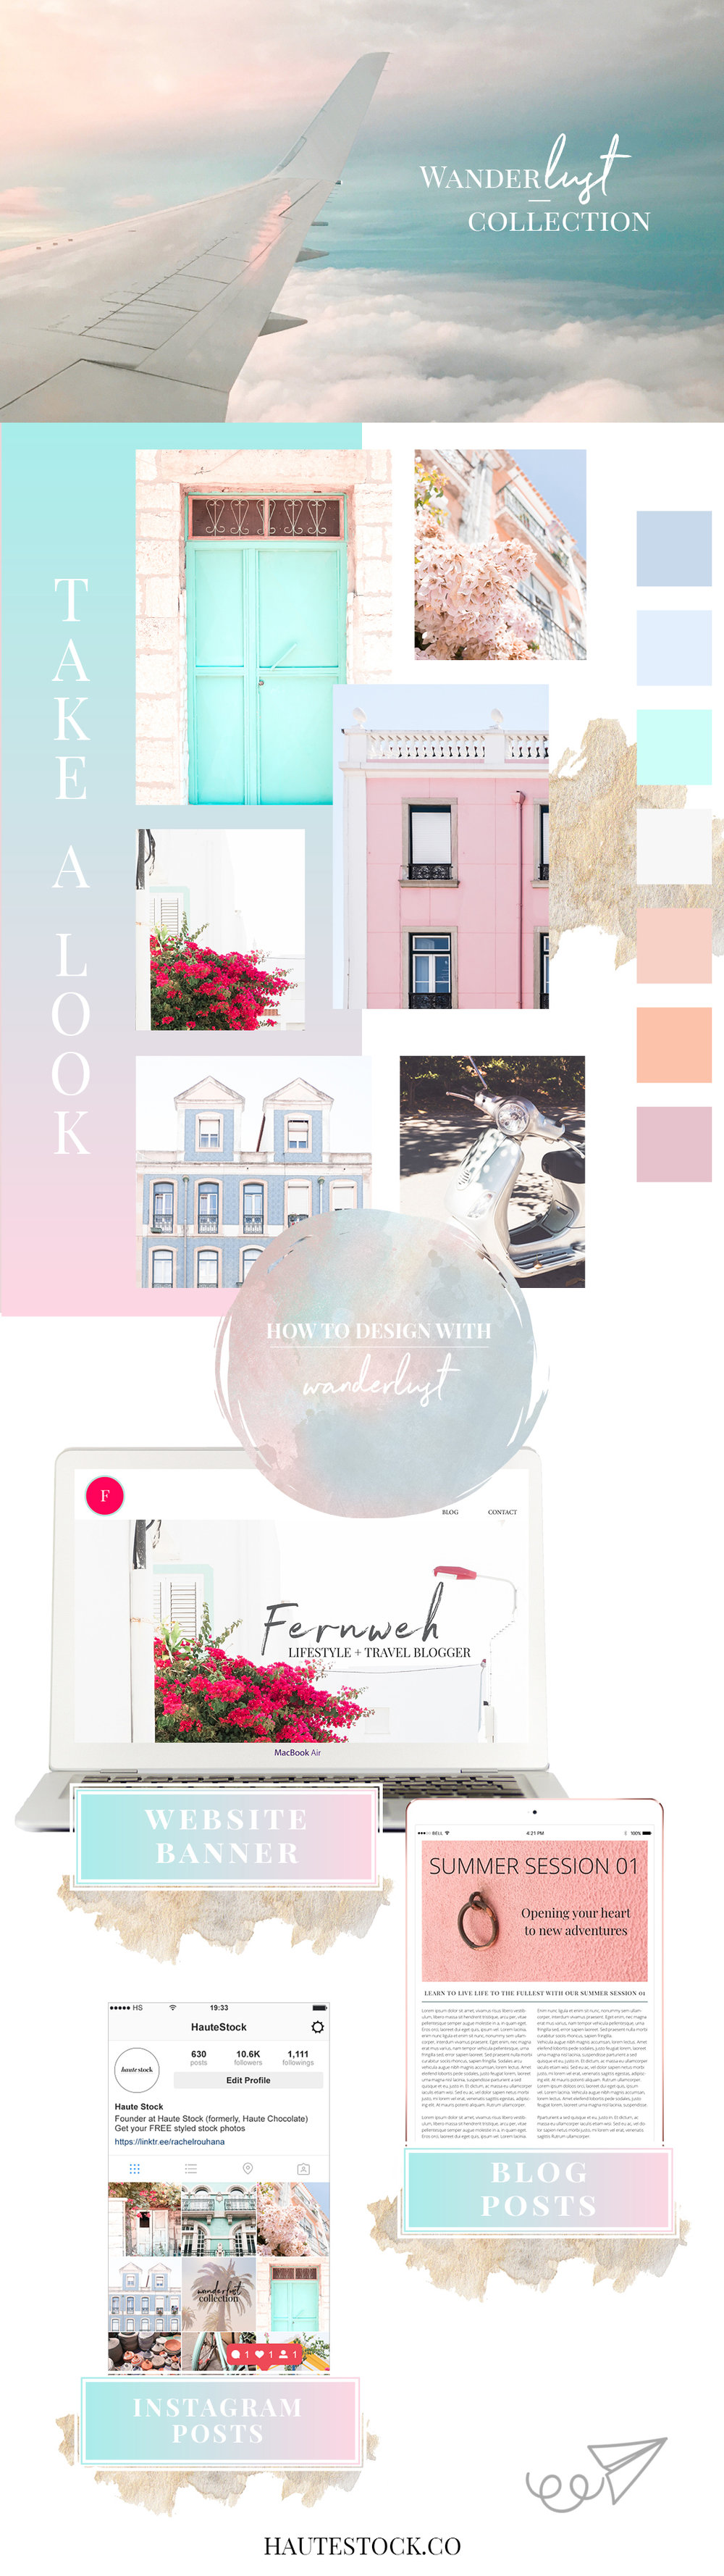 Take a look at Haute Stock's dreamy travel collection Wanderlust. The collection is a travel inspired collection filled with the beauty of the little details, landscapes and architecture viewed around the world.